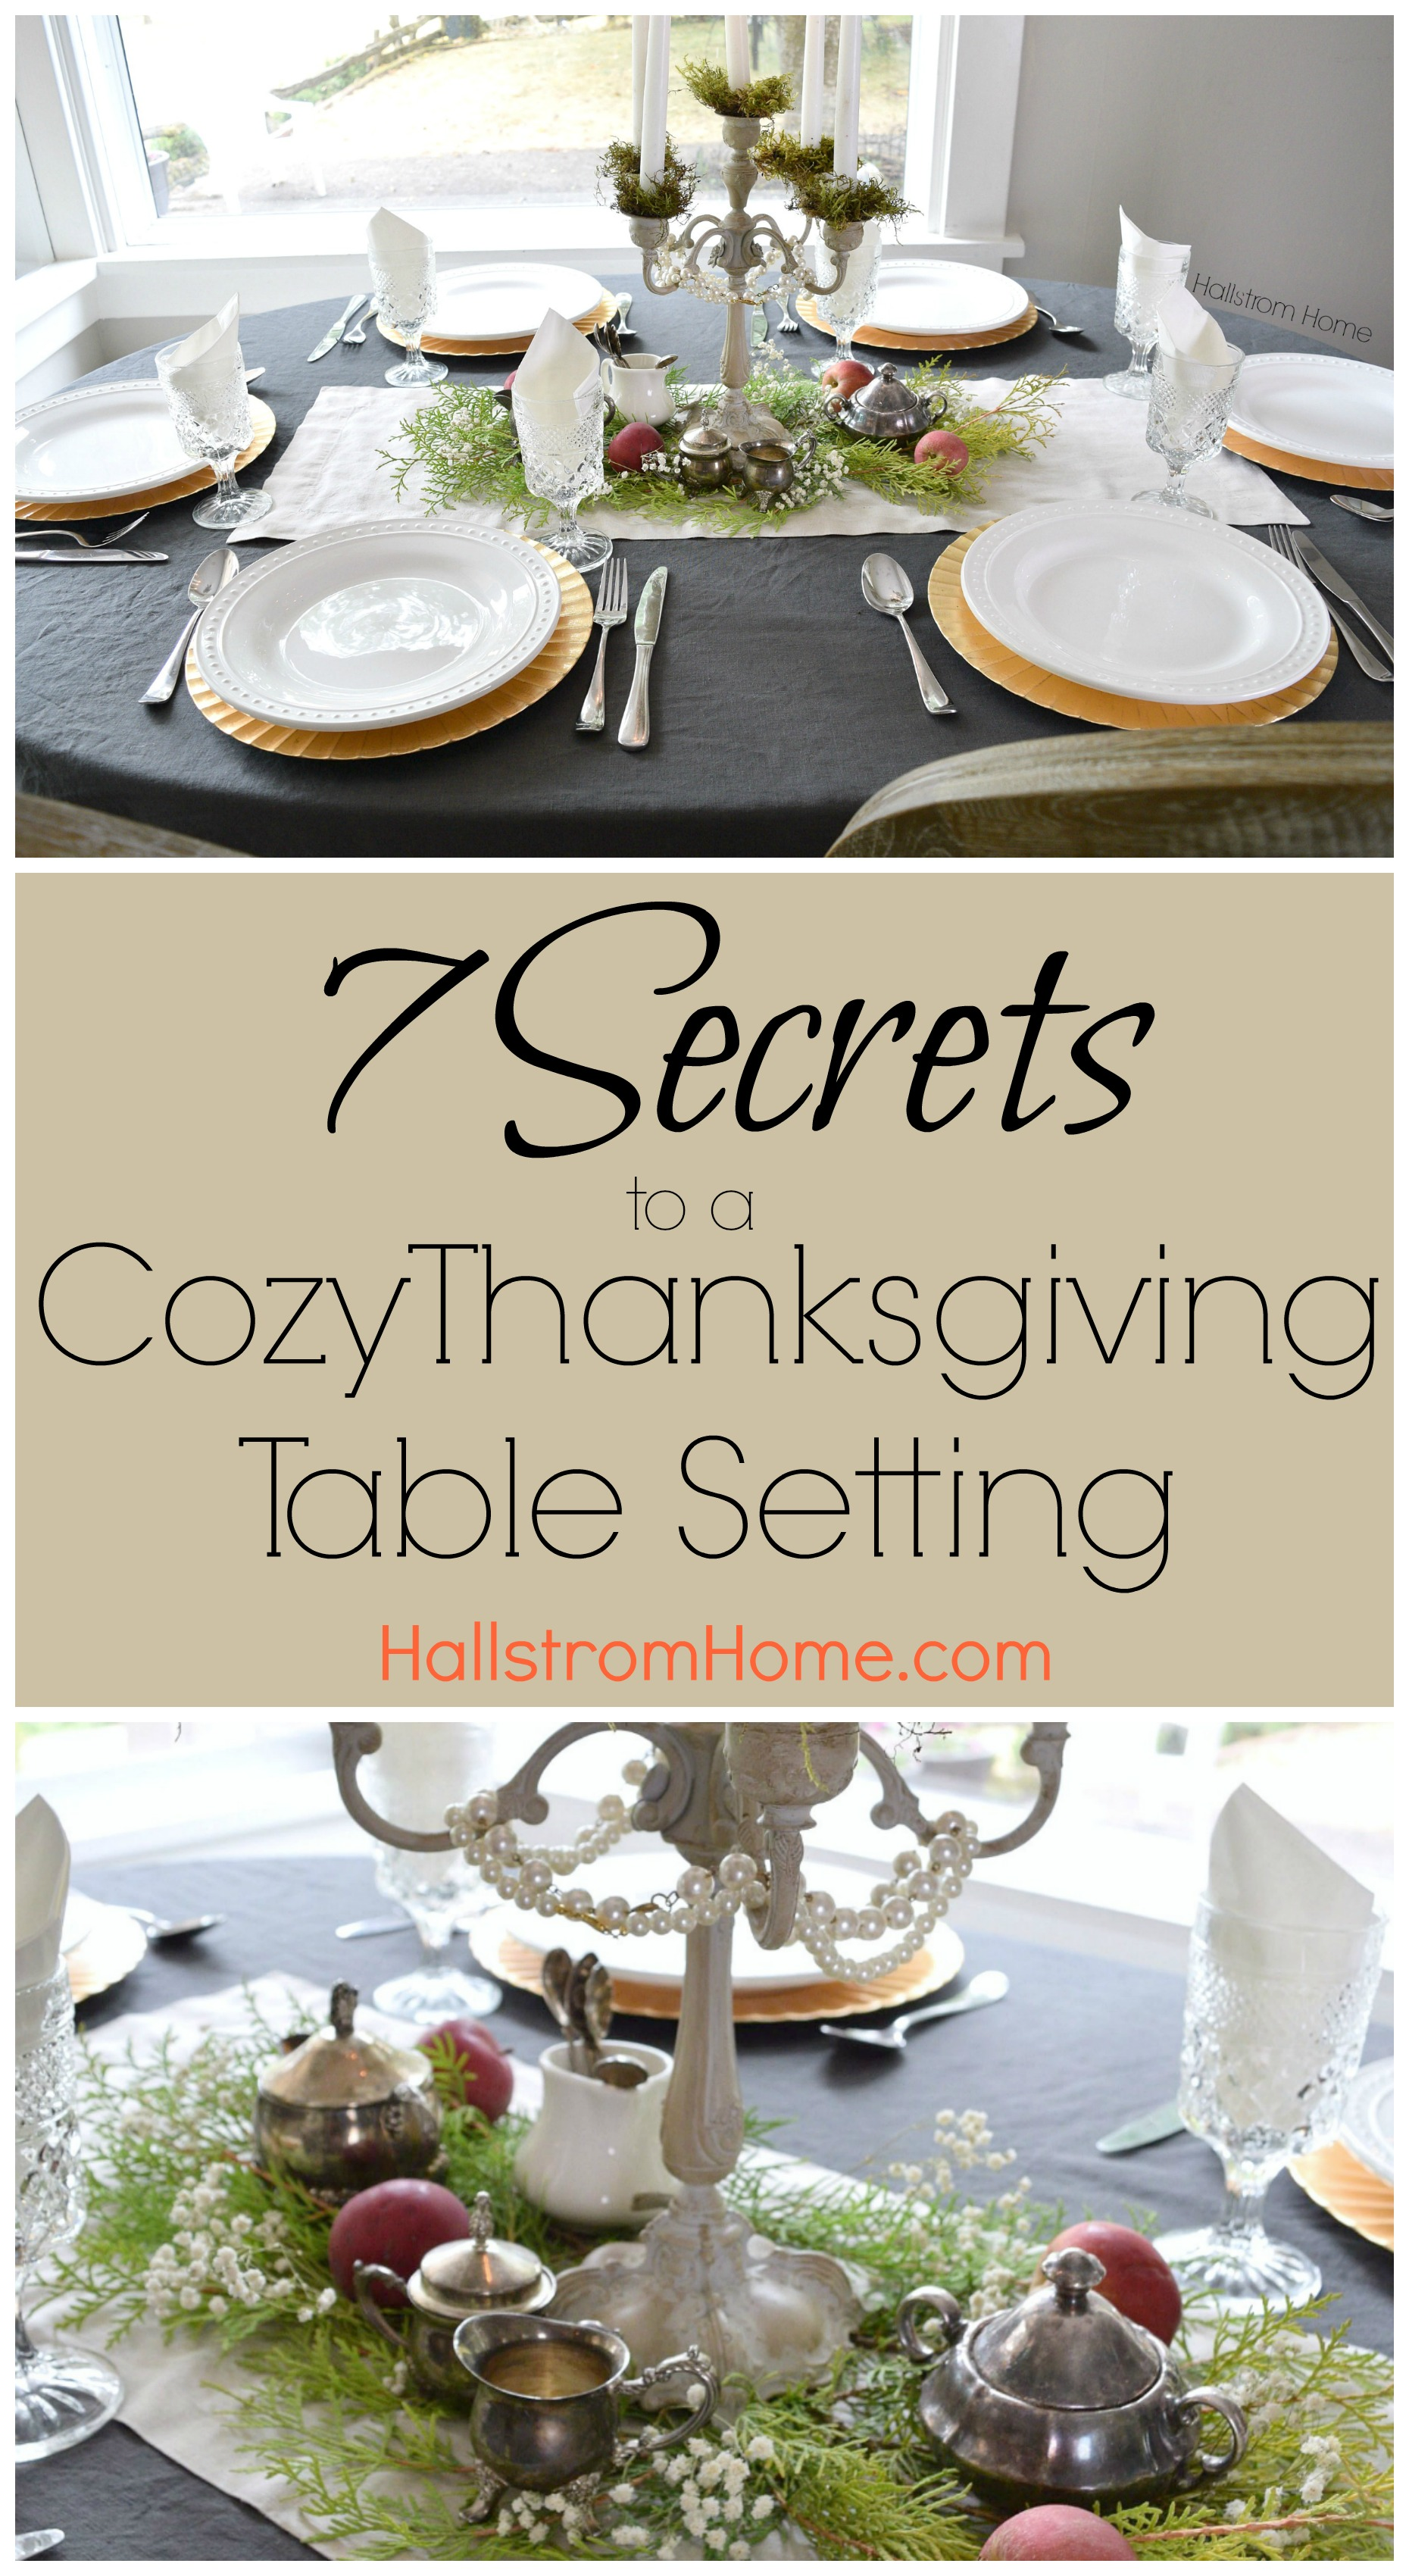 Set a cozy Thanksgiving table this year for your friends and family!